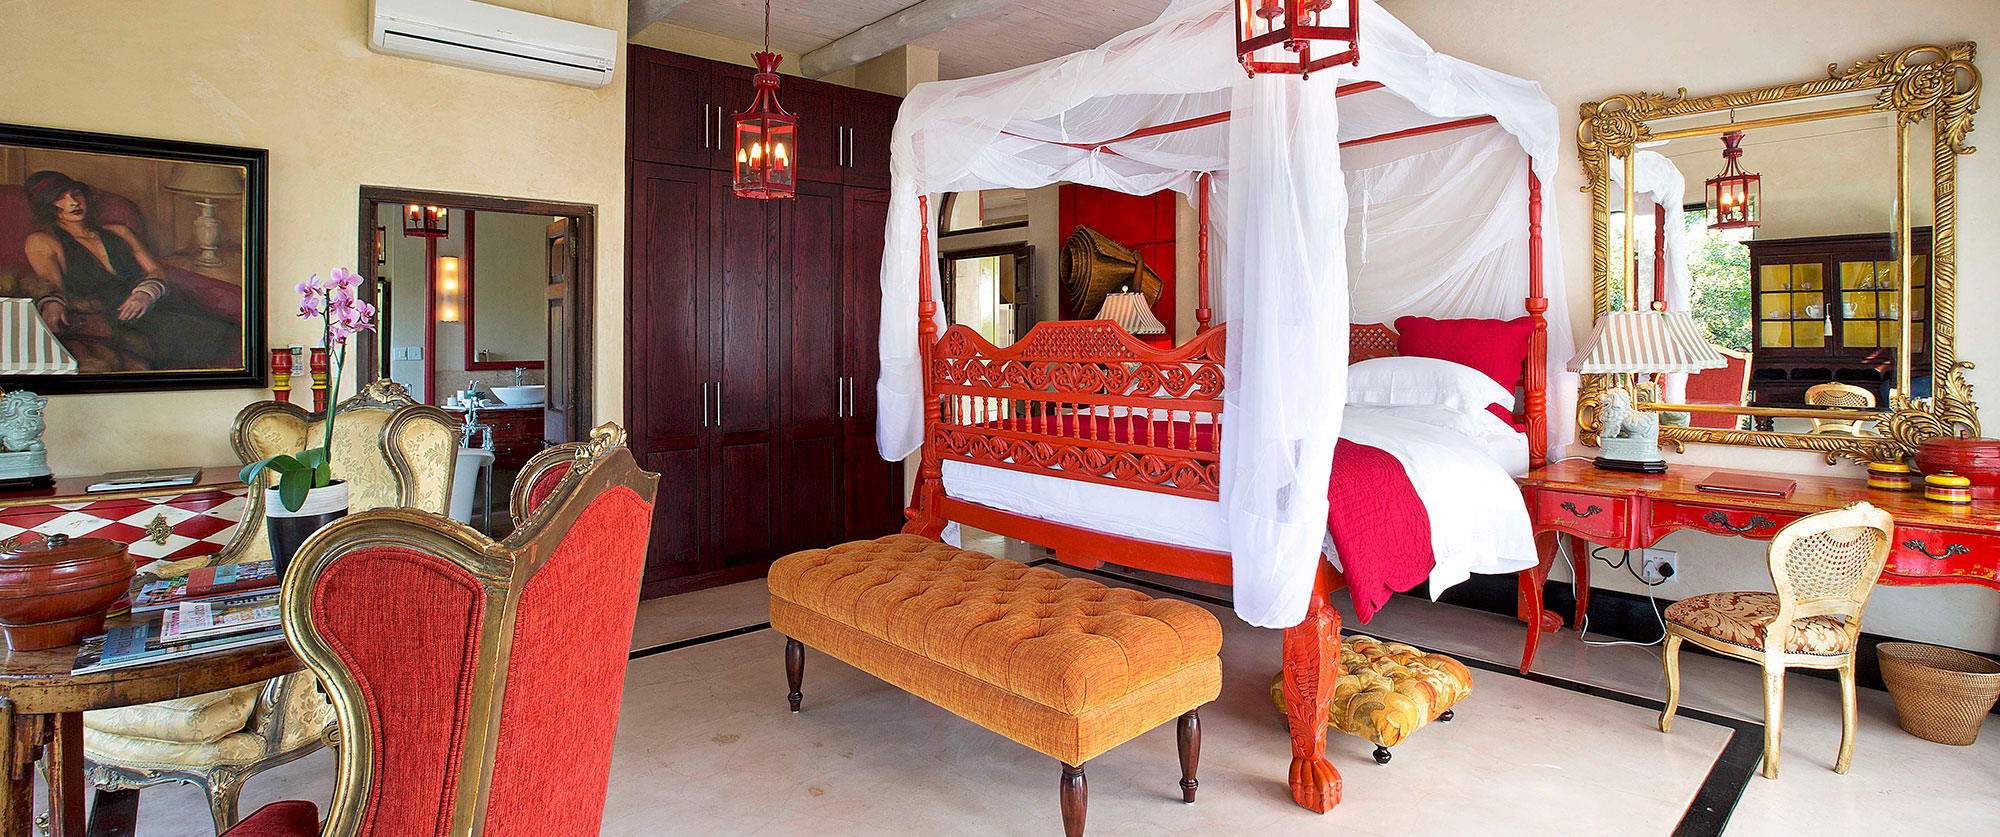 Royal Malewane Safari Lodge Suite